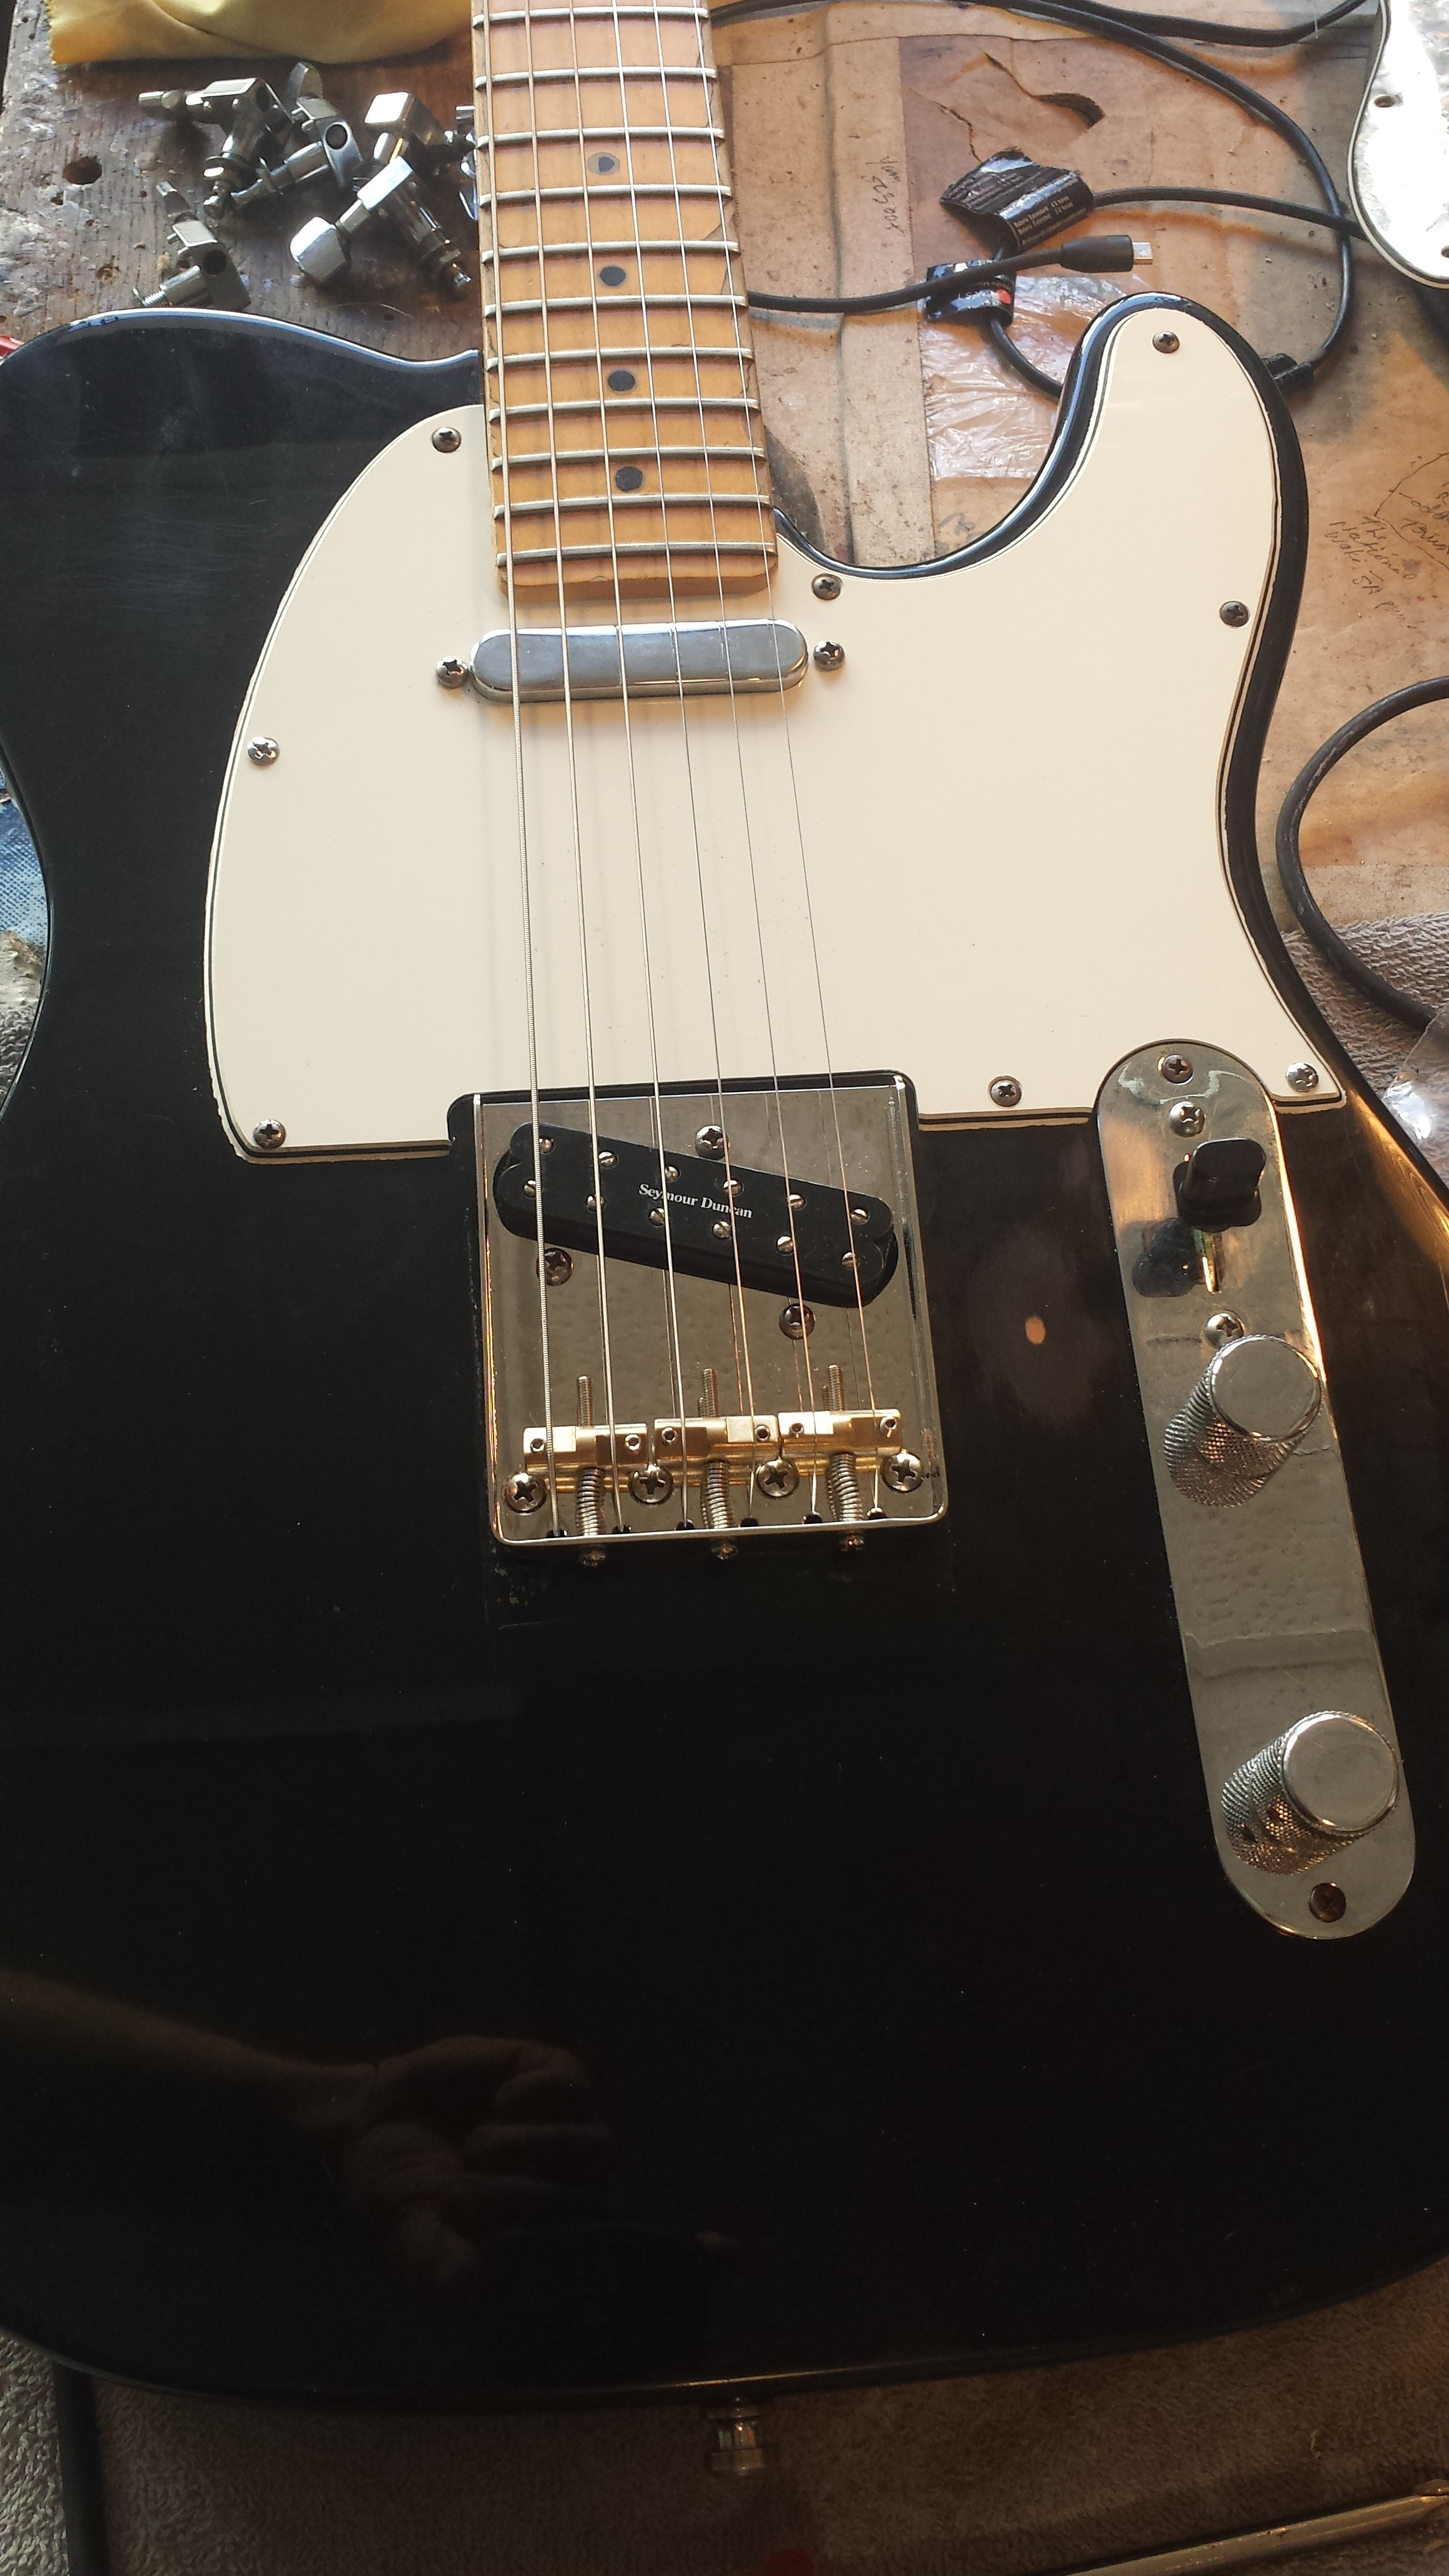 Delighted Strat Wiring Mods Big Bulldog Security Products Rectangular Les Paul 3 Pickup Wiring Diagram Installing A Remote Start Youthful Www Bulldog Com DarkBulldog Security System Making It Work: Vintage Izing A Tele In A Rush | Portland Custom Shop